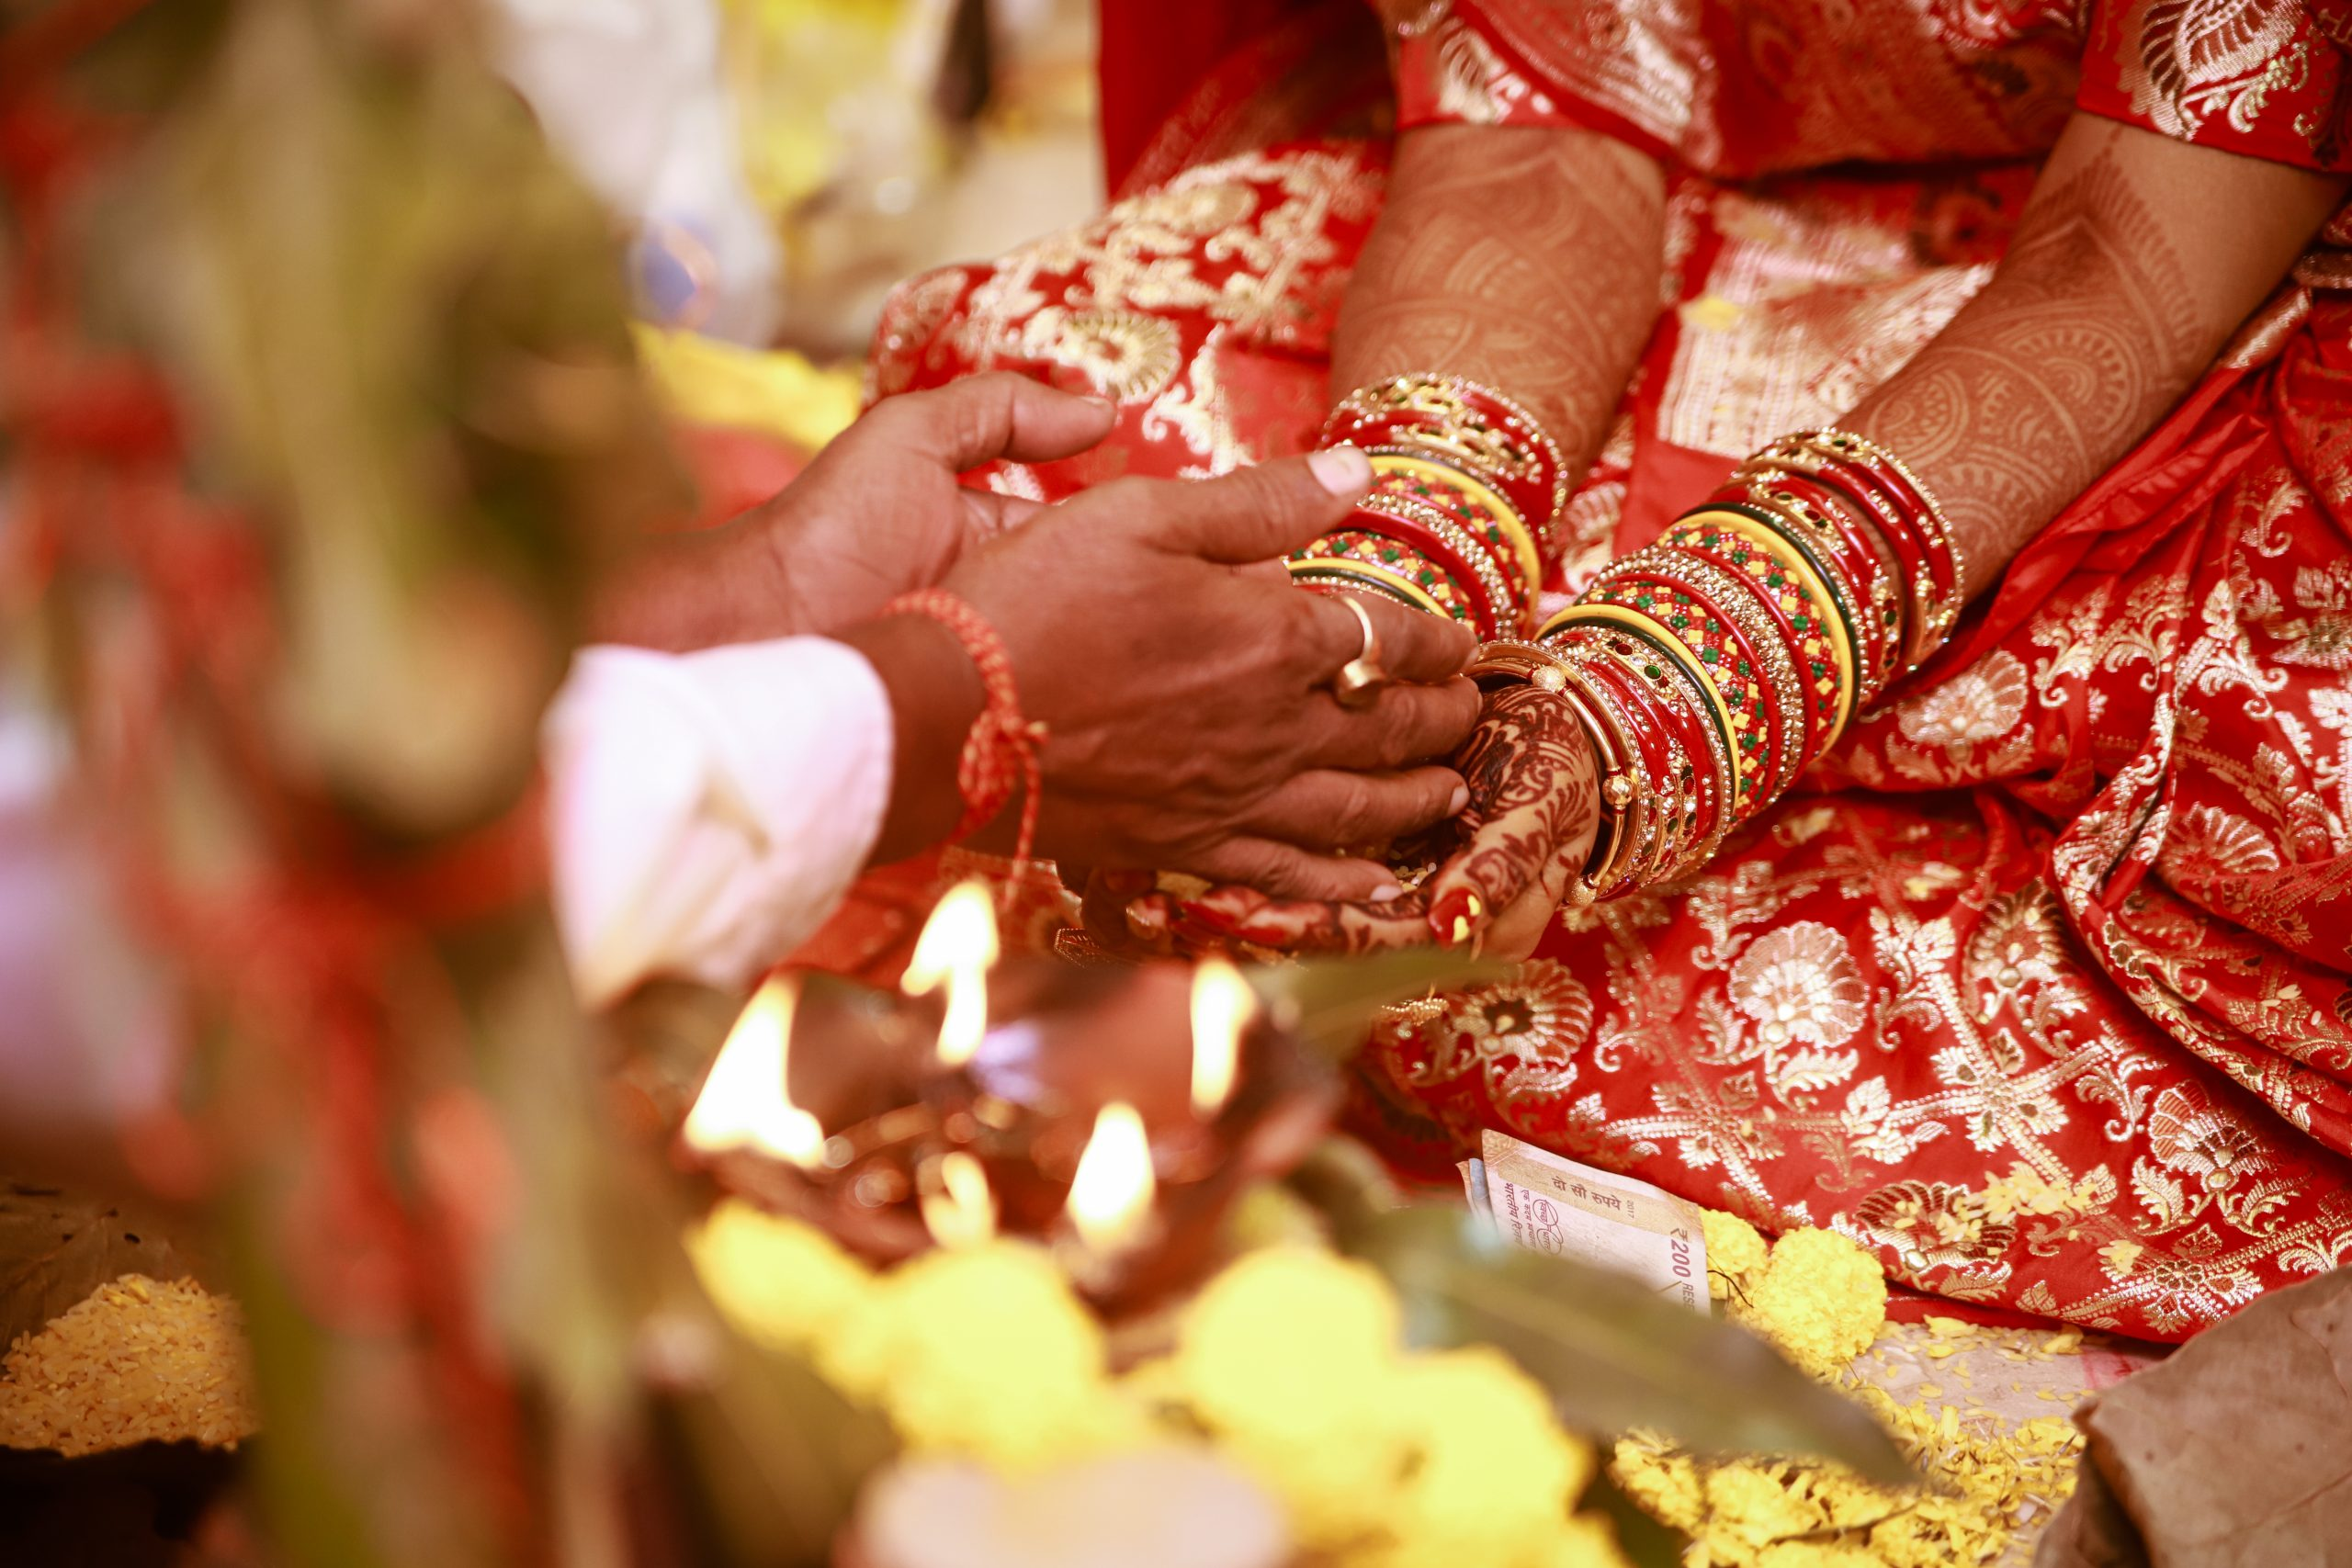 Couple's hand during wedding